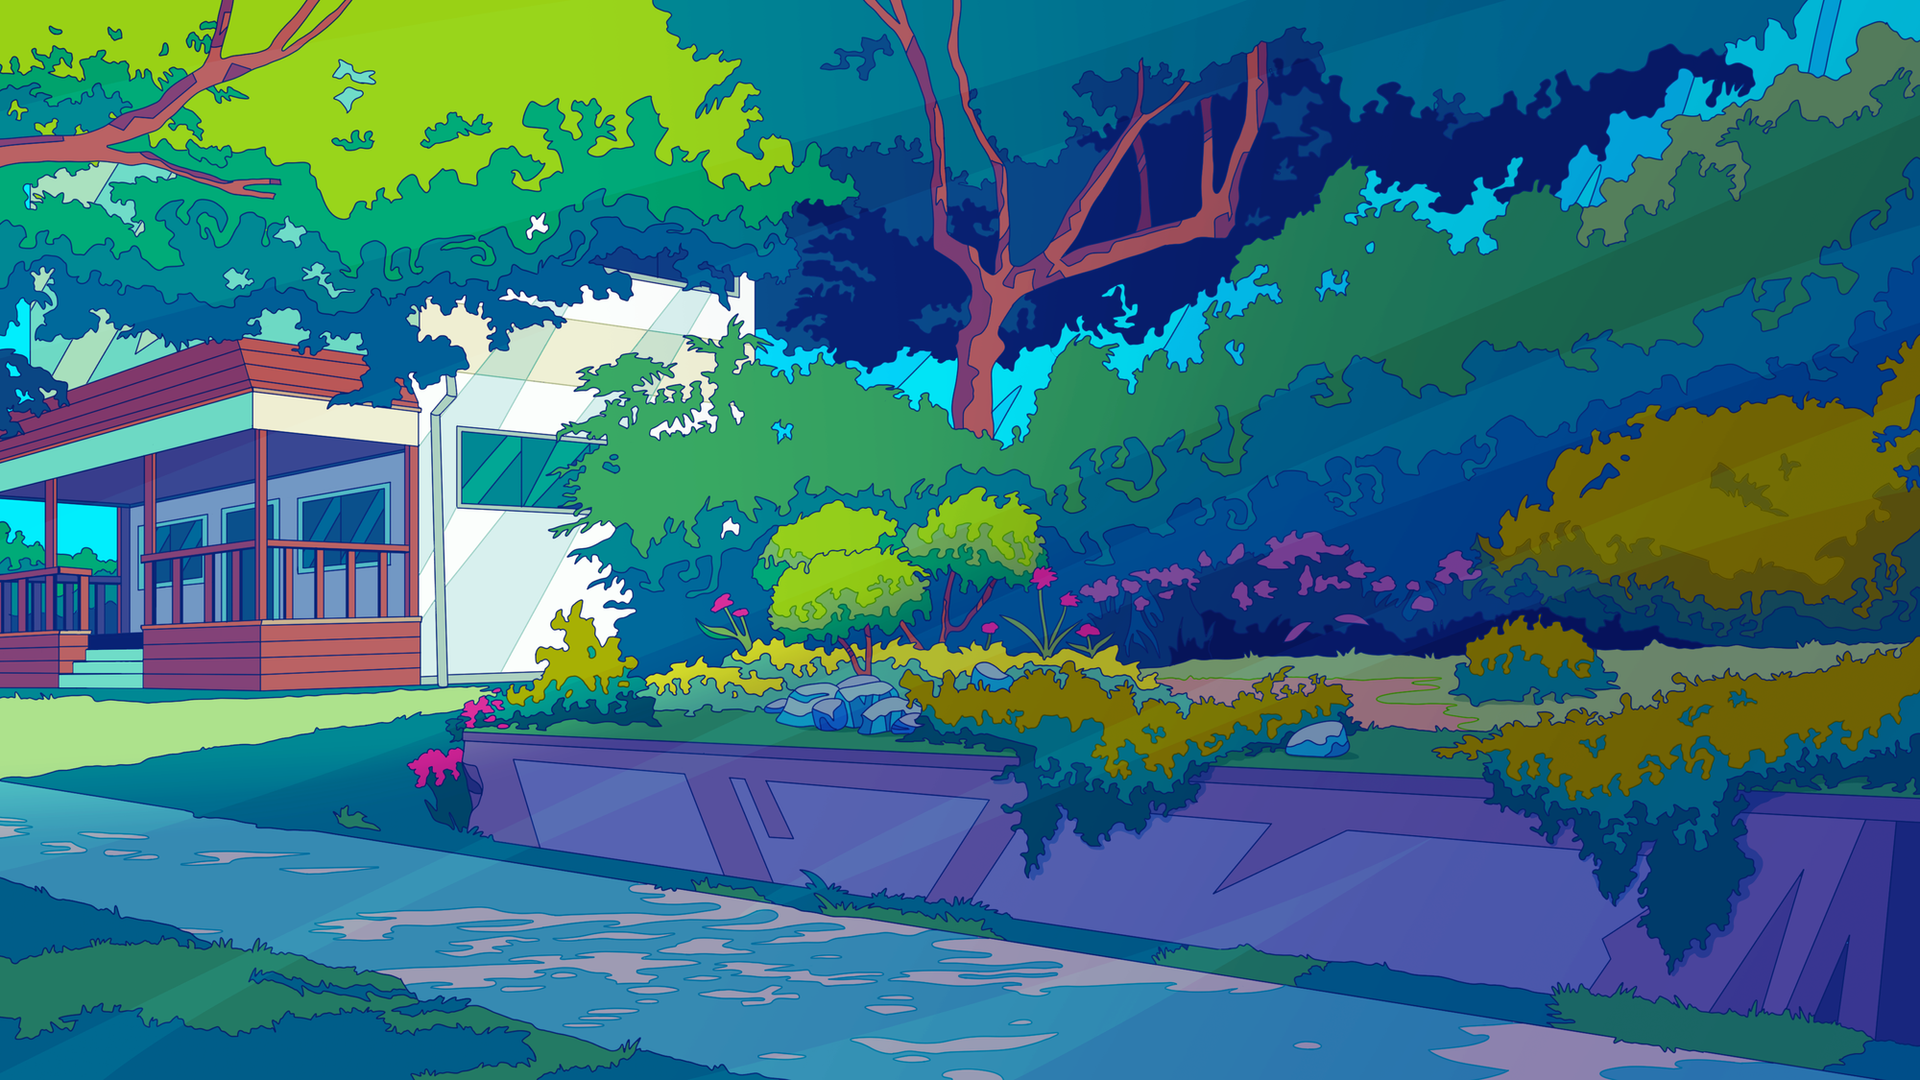 A personal background inspired by a neigborhood walk created in the style of Netflix's Great Pretender.